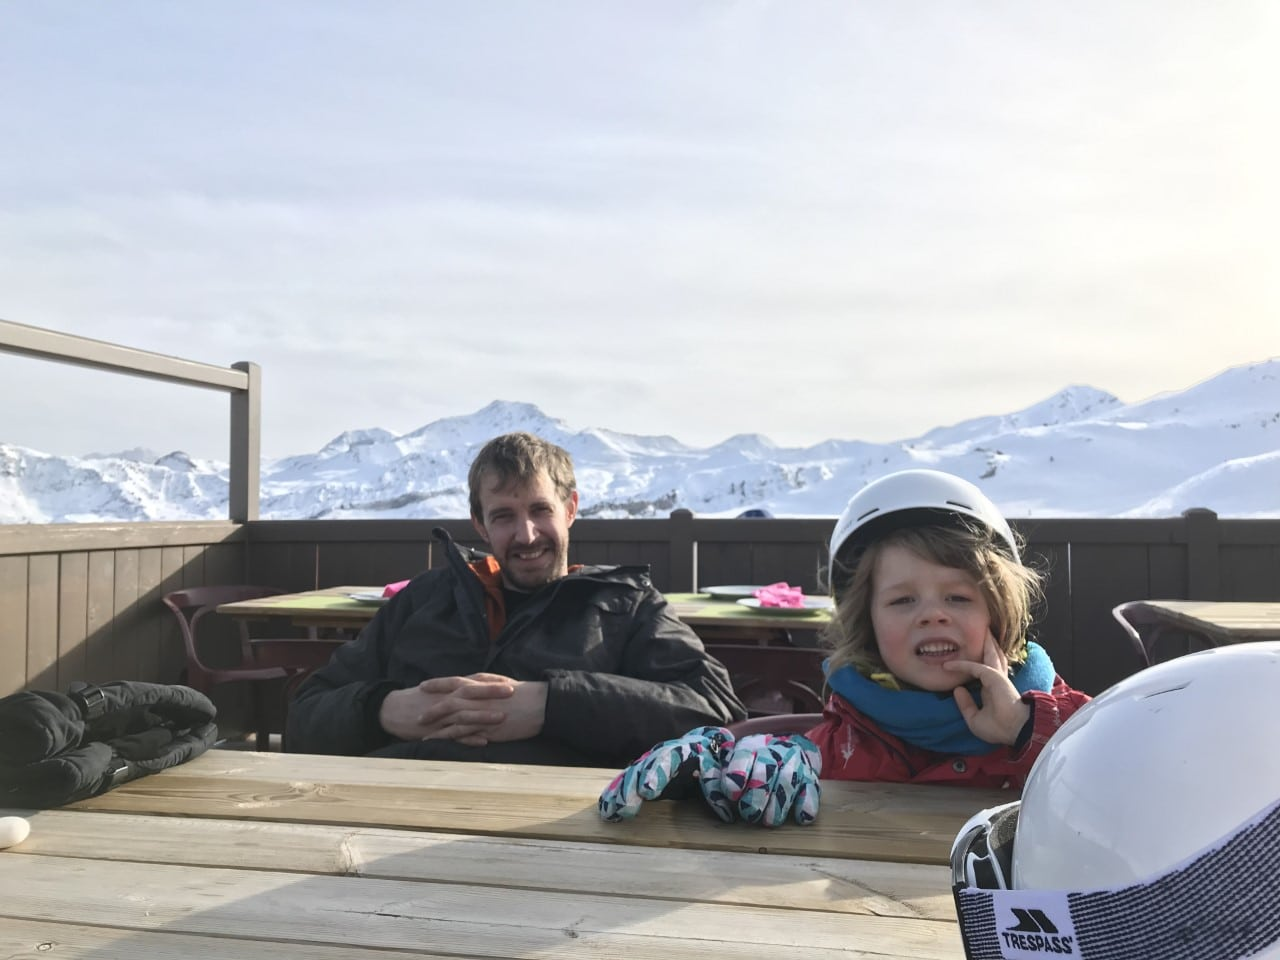 cafe high in French Alps for skiers